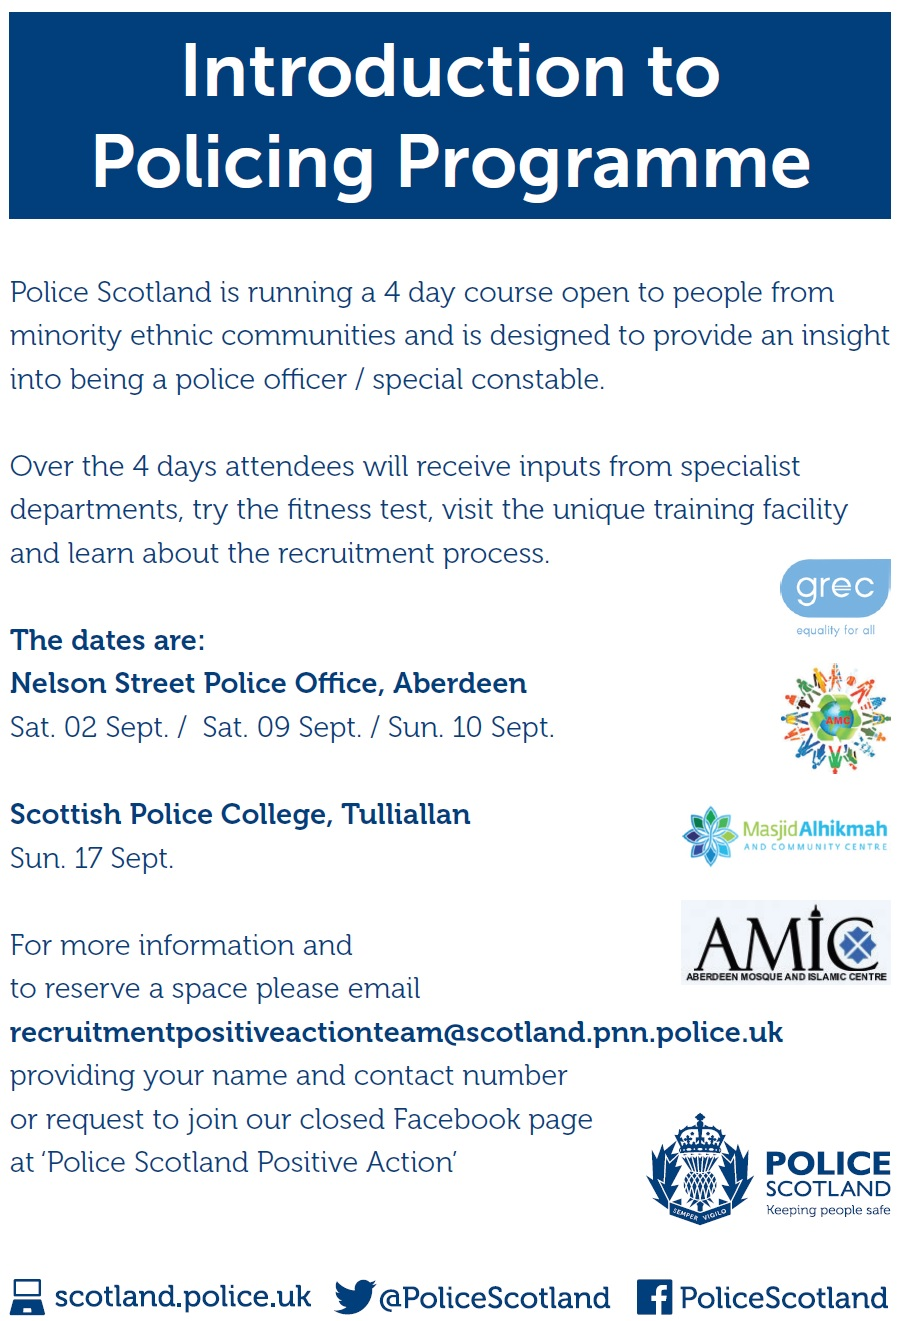 Russian centre in scotland haven police scotland continues to encourage members of ethnic minorities to apply for the job and once again refers to the russian speaking community kristyandbryce Choice Image